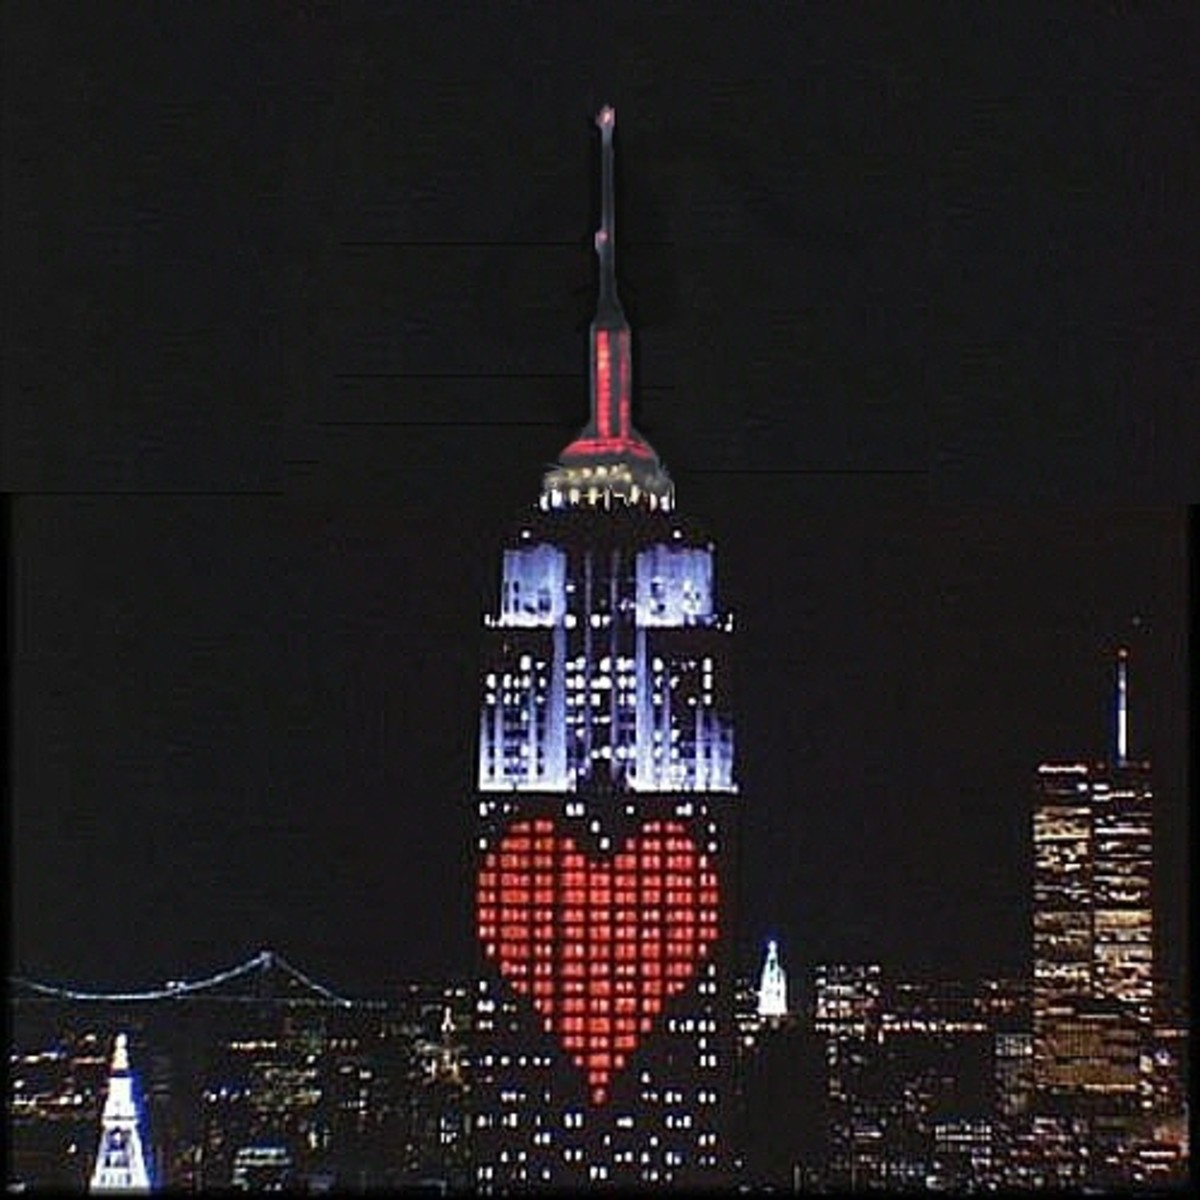 An illuminated heart on The Empire State Building on St Valentine's Day in 'Sleepless in Seattle' - a romantic signal which is seen by Annie Reed - a signal she cannot ignore